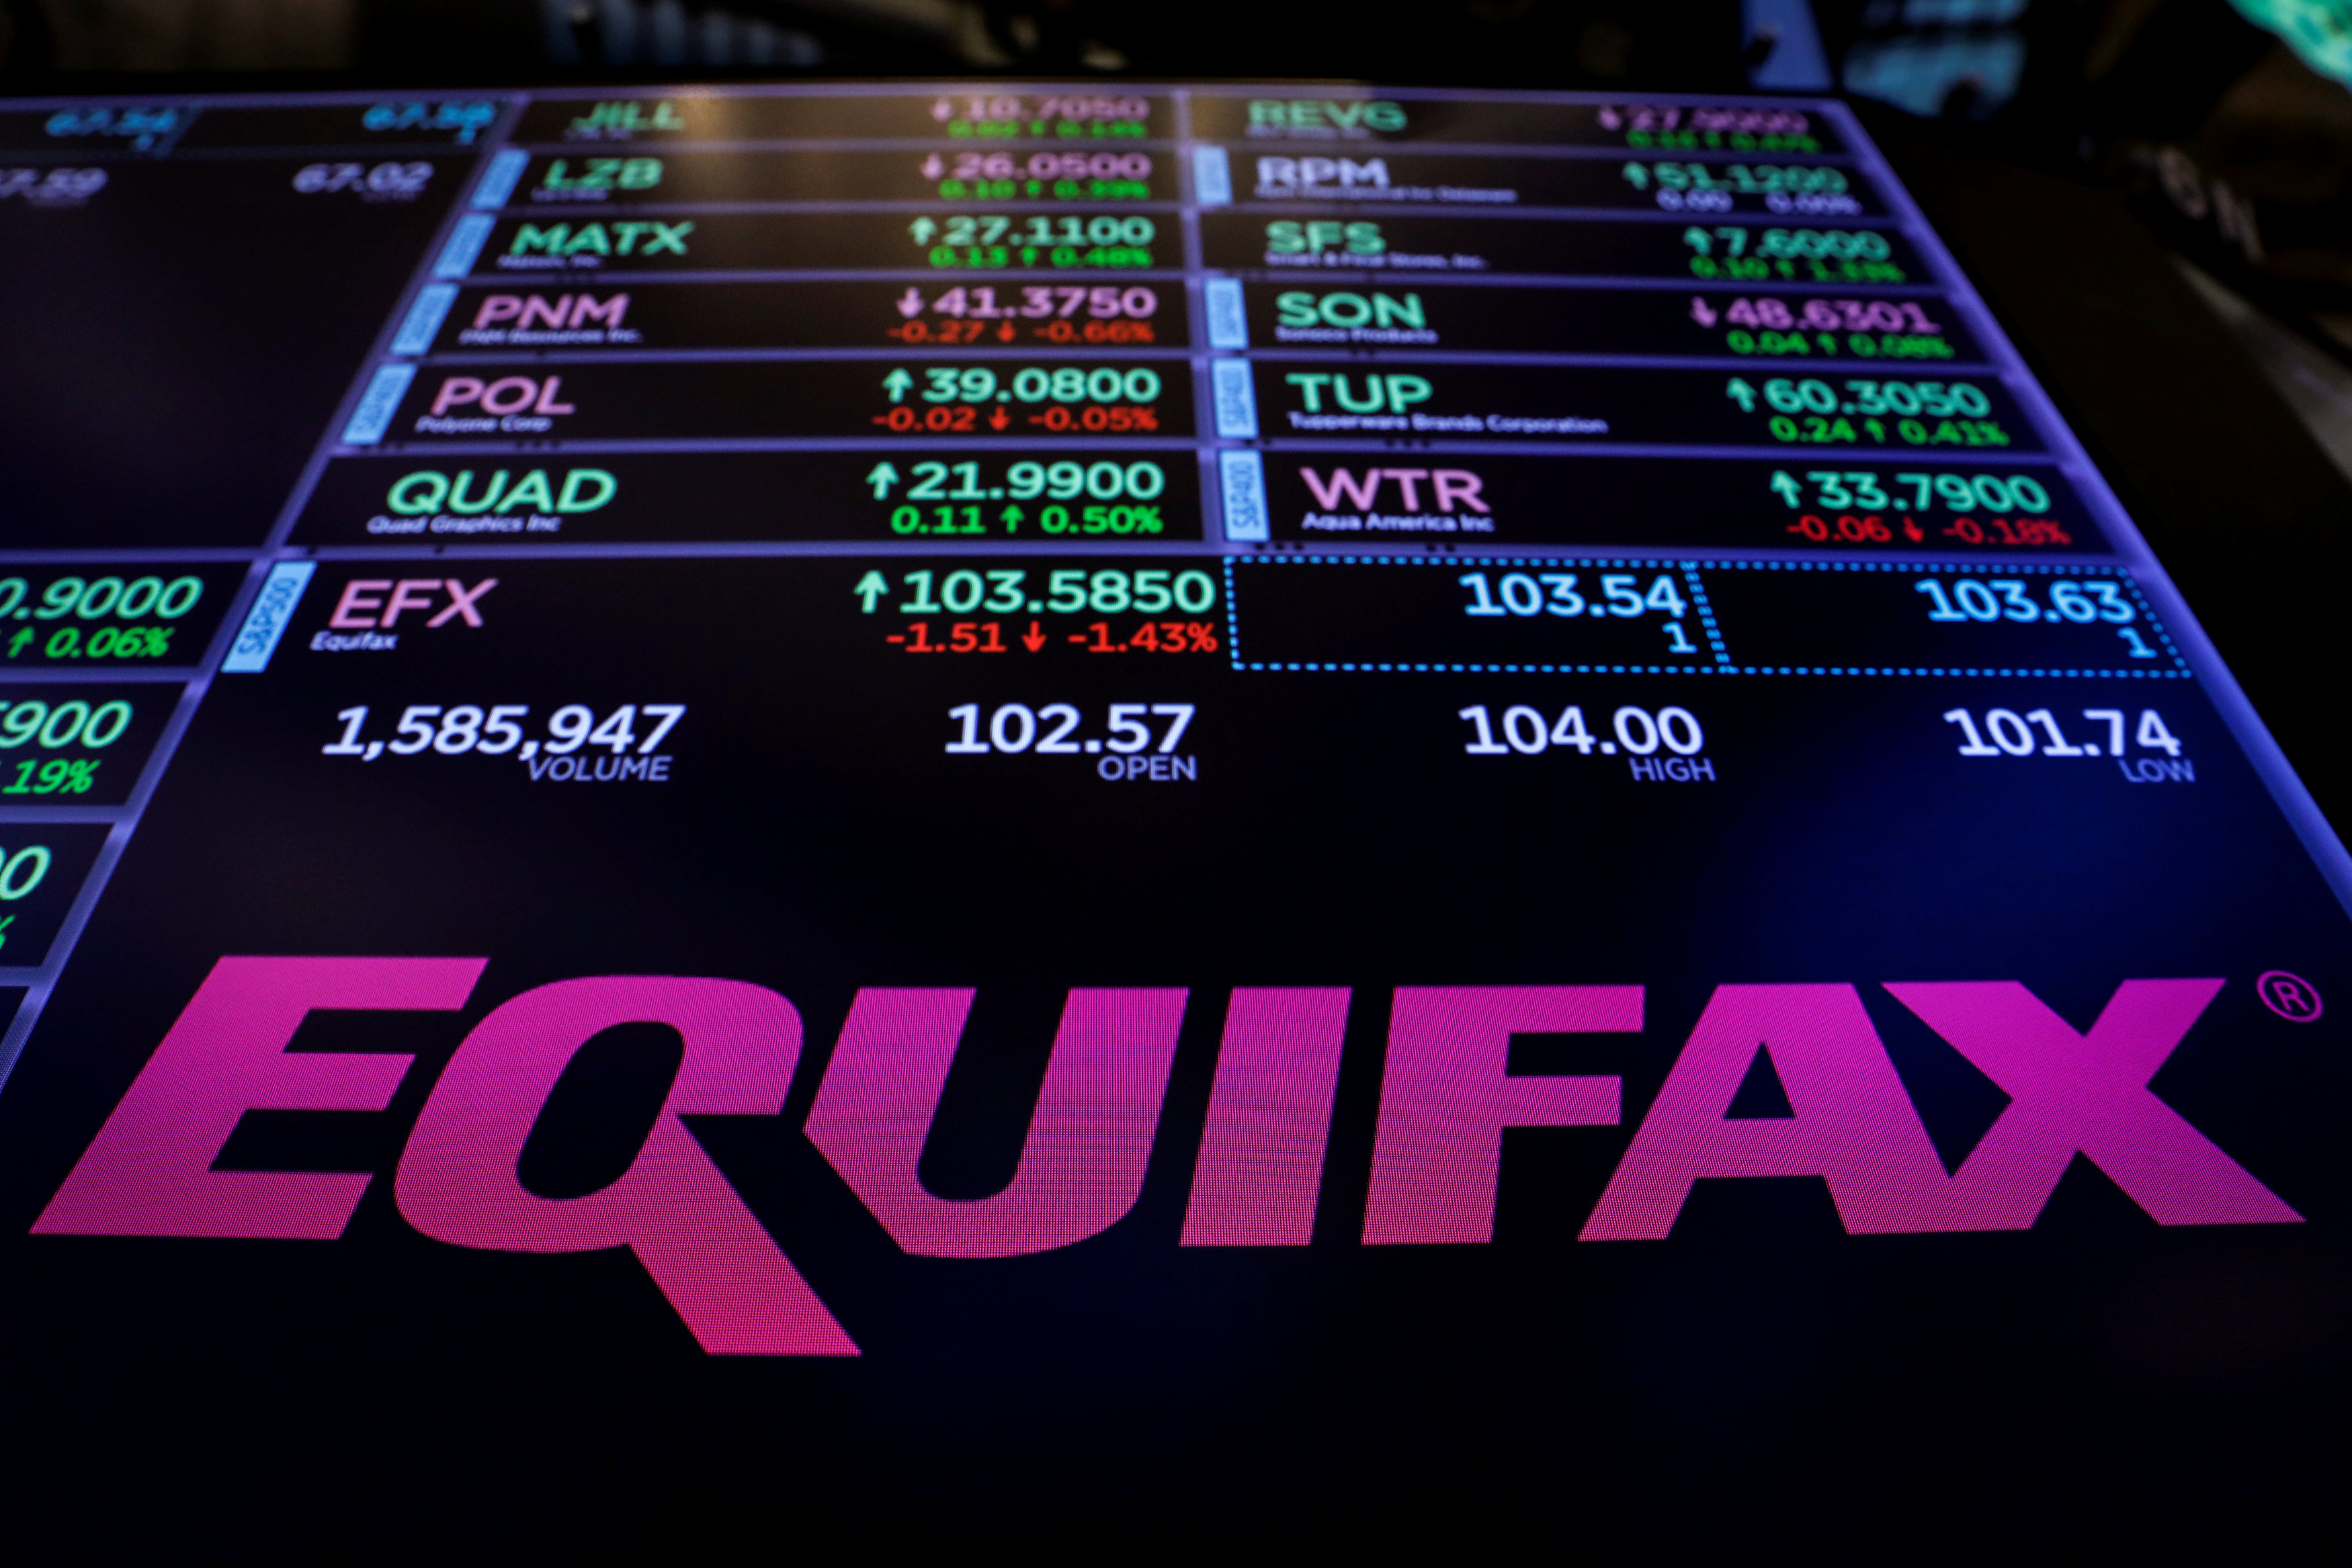 The logo and trading information for Credit reporting company Equifax Inc. are displayed on a screen on the floor of the New York Stock Exchange (NYSE) in New York, U.S., September 26, 2017. REUTERS/Lucas Jackson